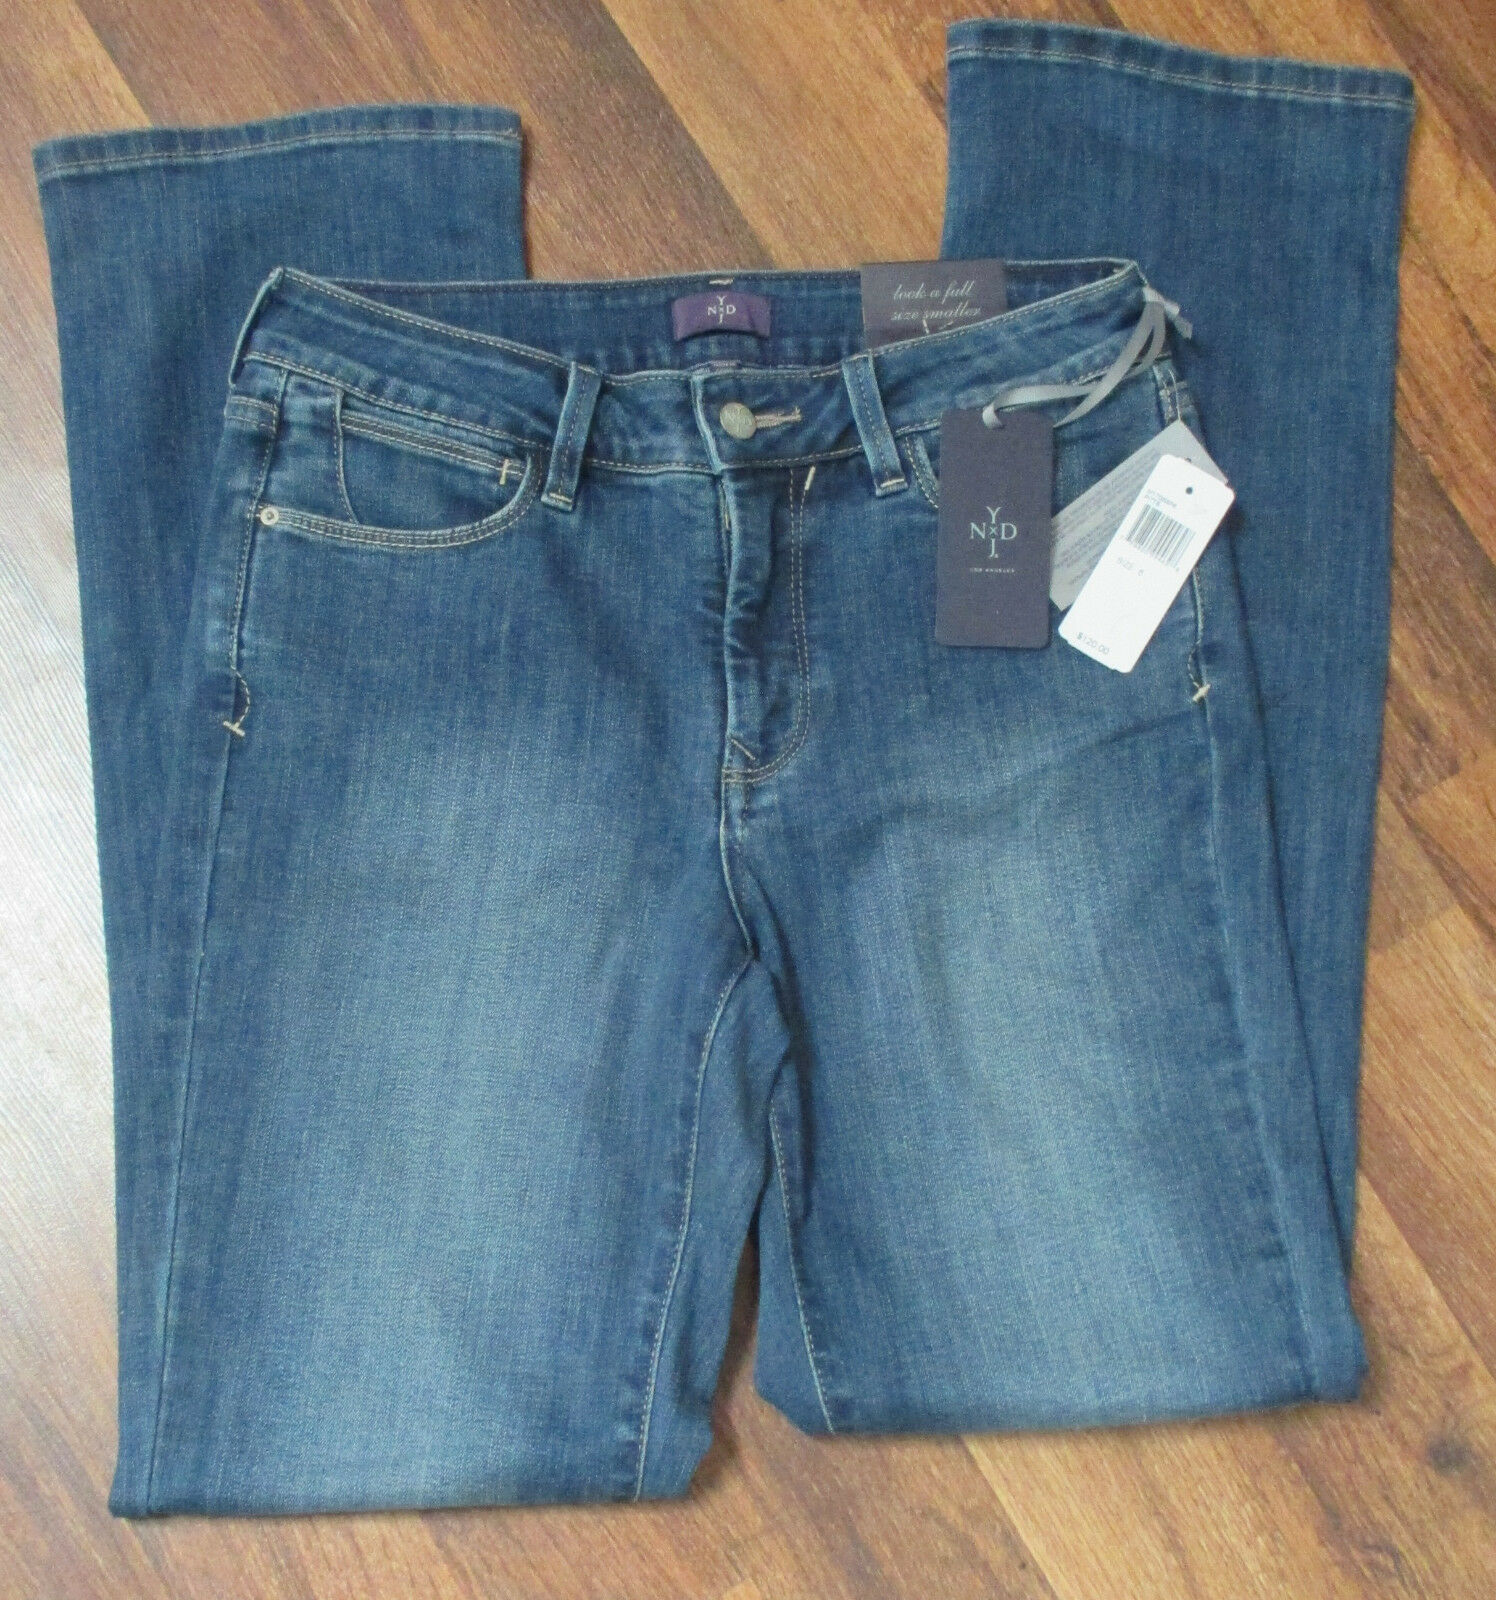 NEW NYDJ Not Your Daughters Jeans Marilyn Straight Leg Size 6798800994628